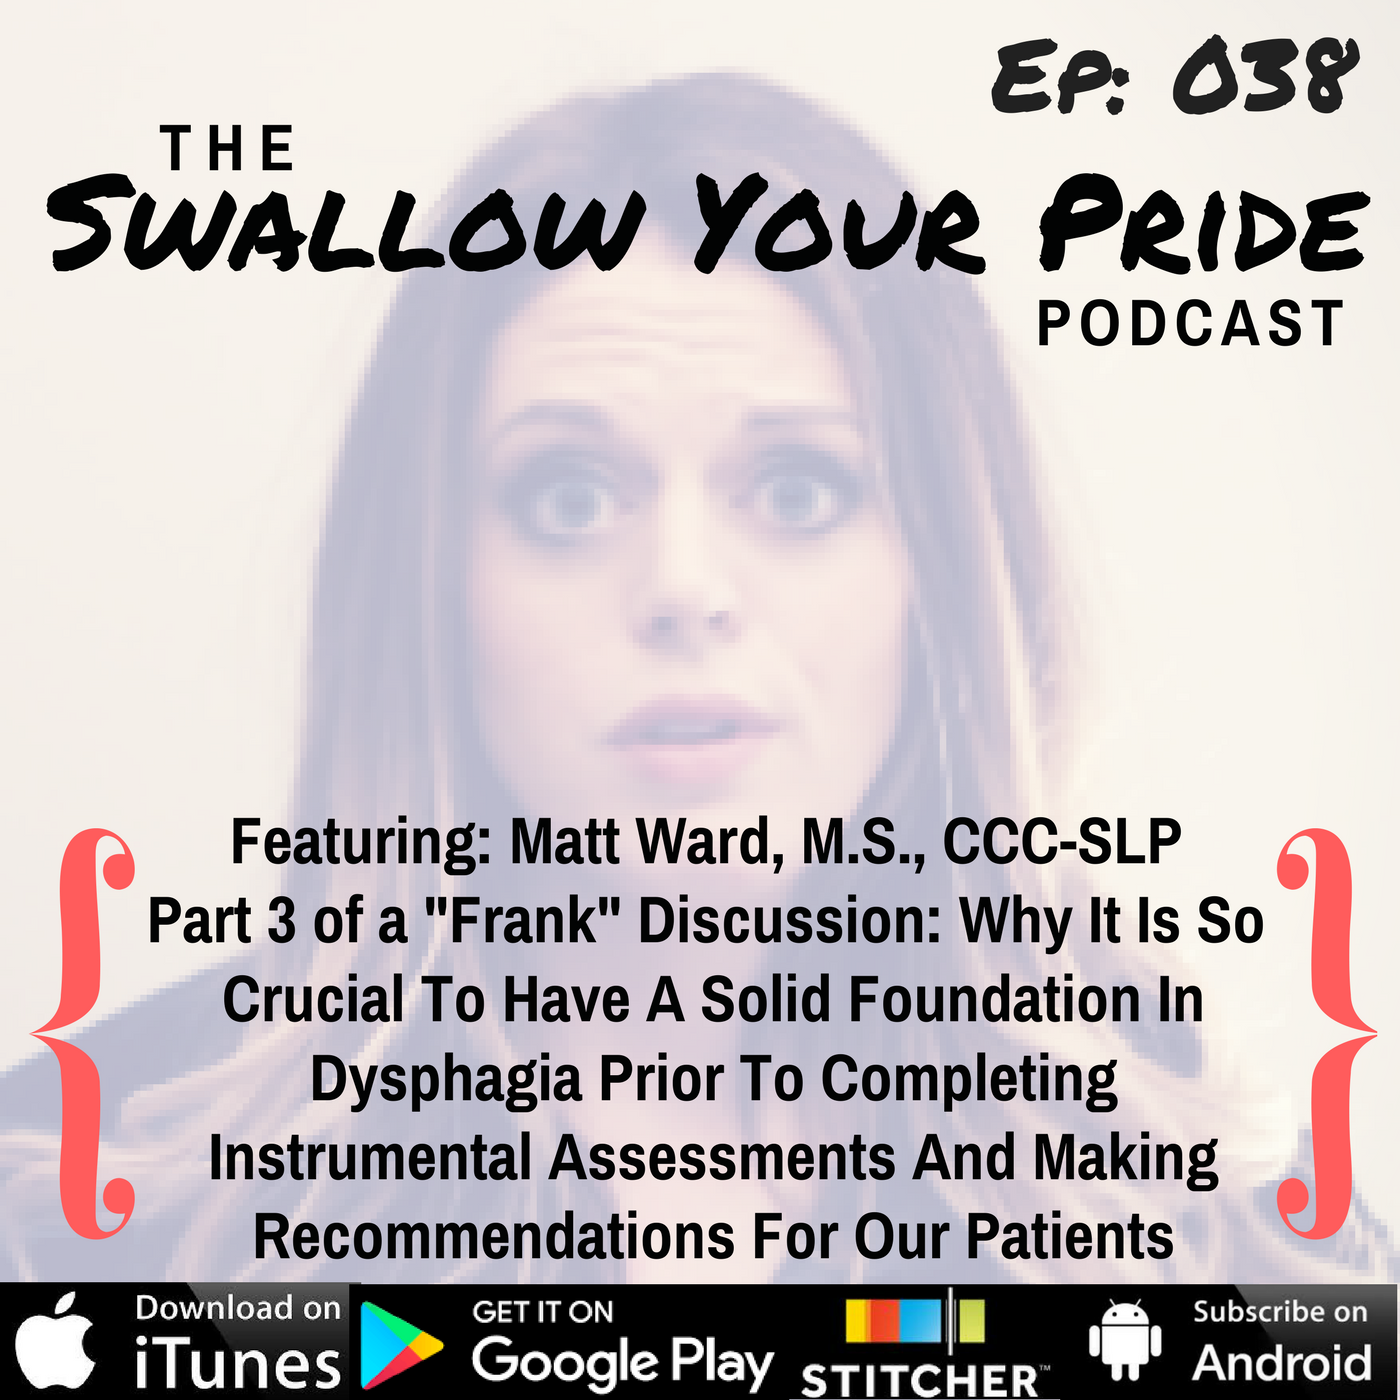 """038 – Matt Ward, M.S., CCC-SLP – Part 3 of a """"Frank"""" Discussion: Why It Is So Crucial To Have A Solid Foundation In Dysphagia Prior To Completing Instrumental Assessments And Making Recommendations For Our Patients"""